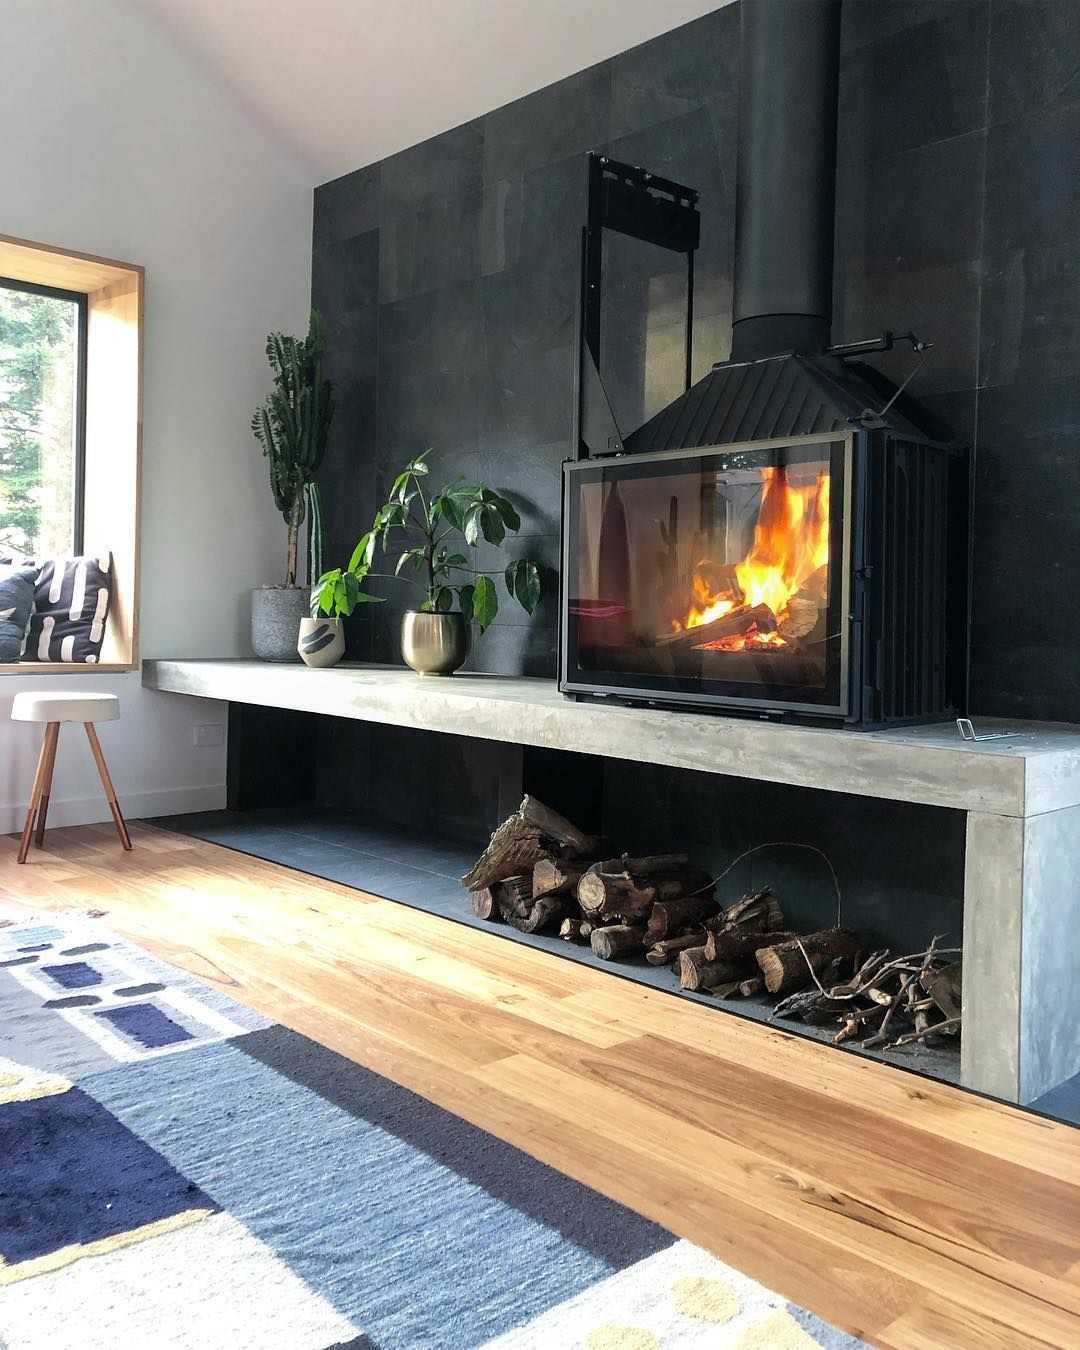 Interior Design On Instagram The Perfect Fire For These Cooler Nights Is A Cheminees Philippe A Freestanding Fireplace Home Fireplace Wood Stove Fireplace